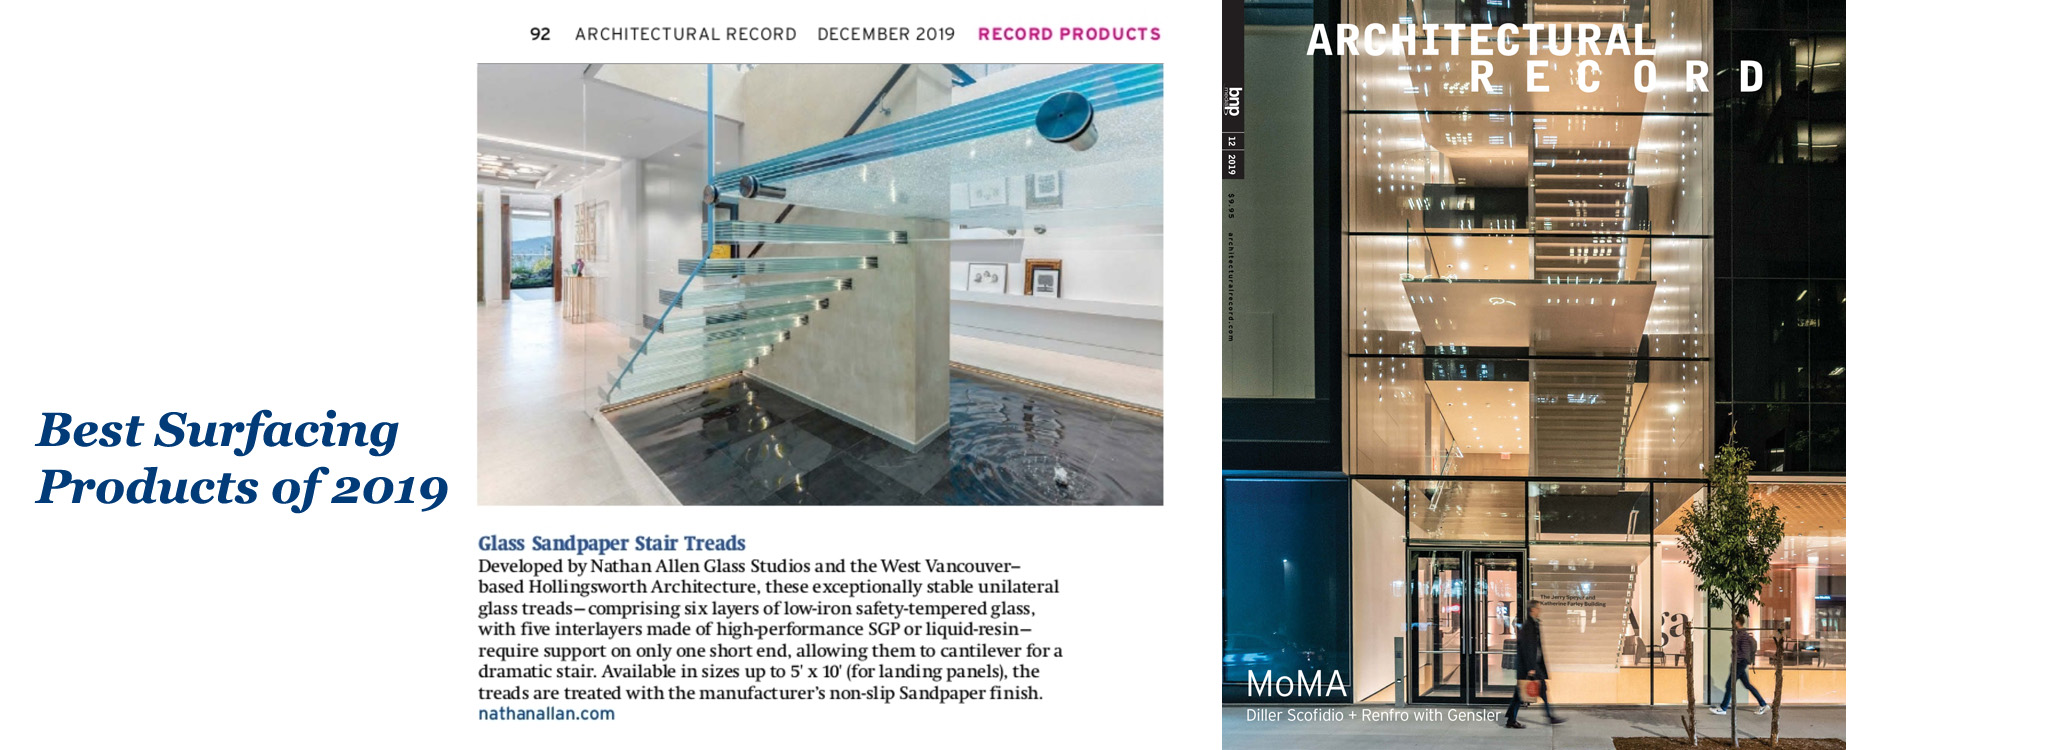 ARCHITECTURAL RECORD | Glass Sandpaper Stair Treads Awards 2019